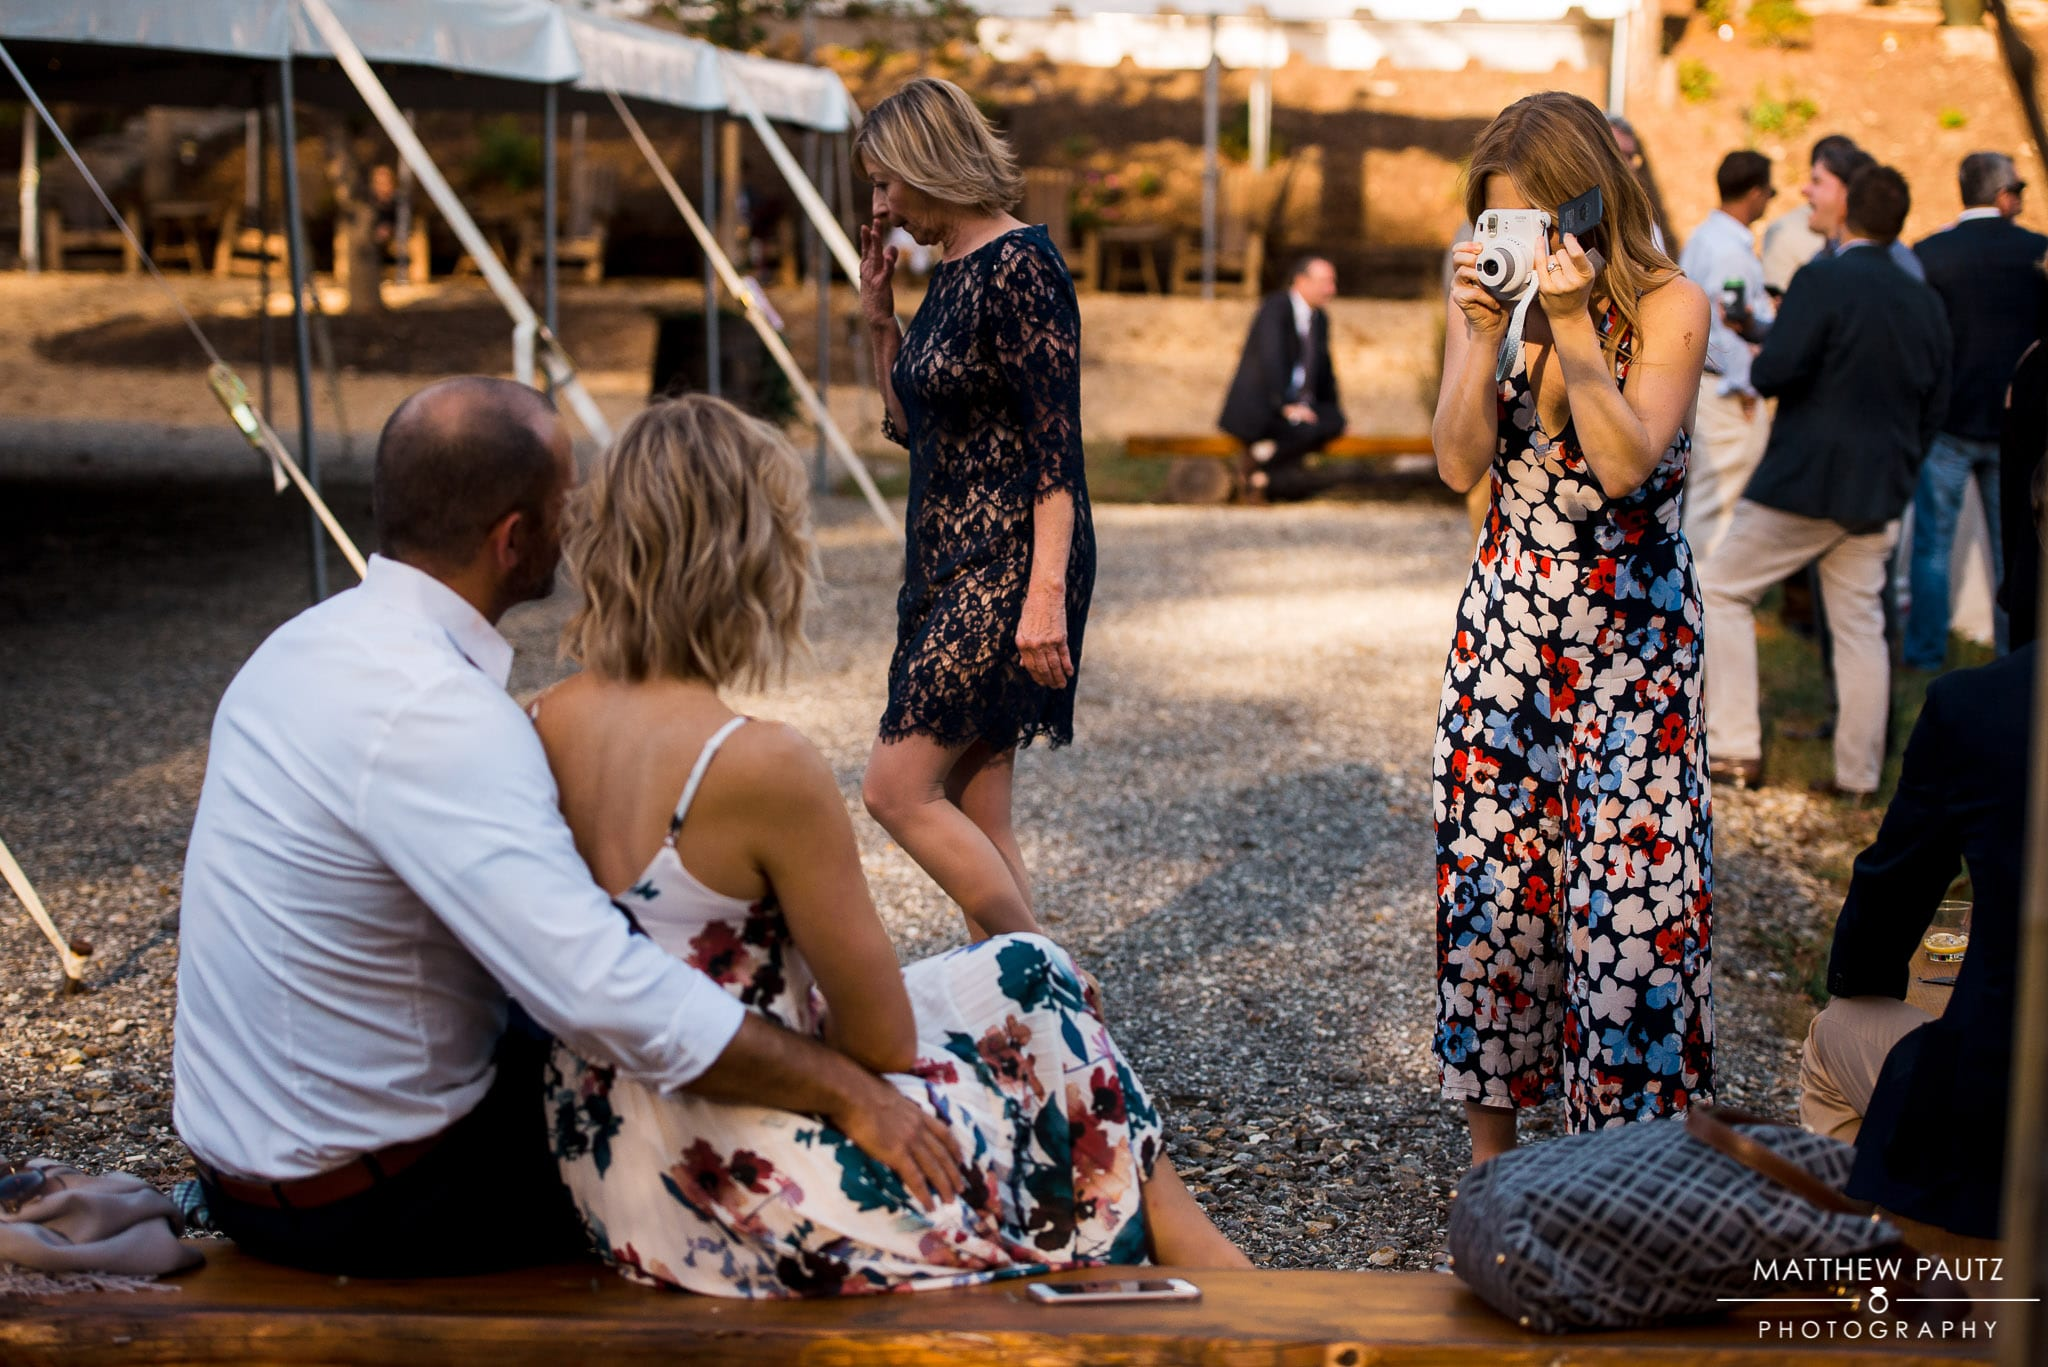 Wedding guests taking film photos of each other at reception